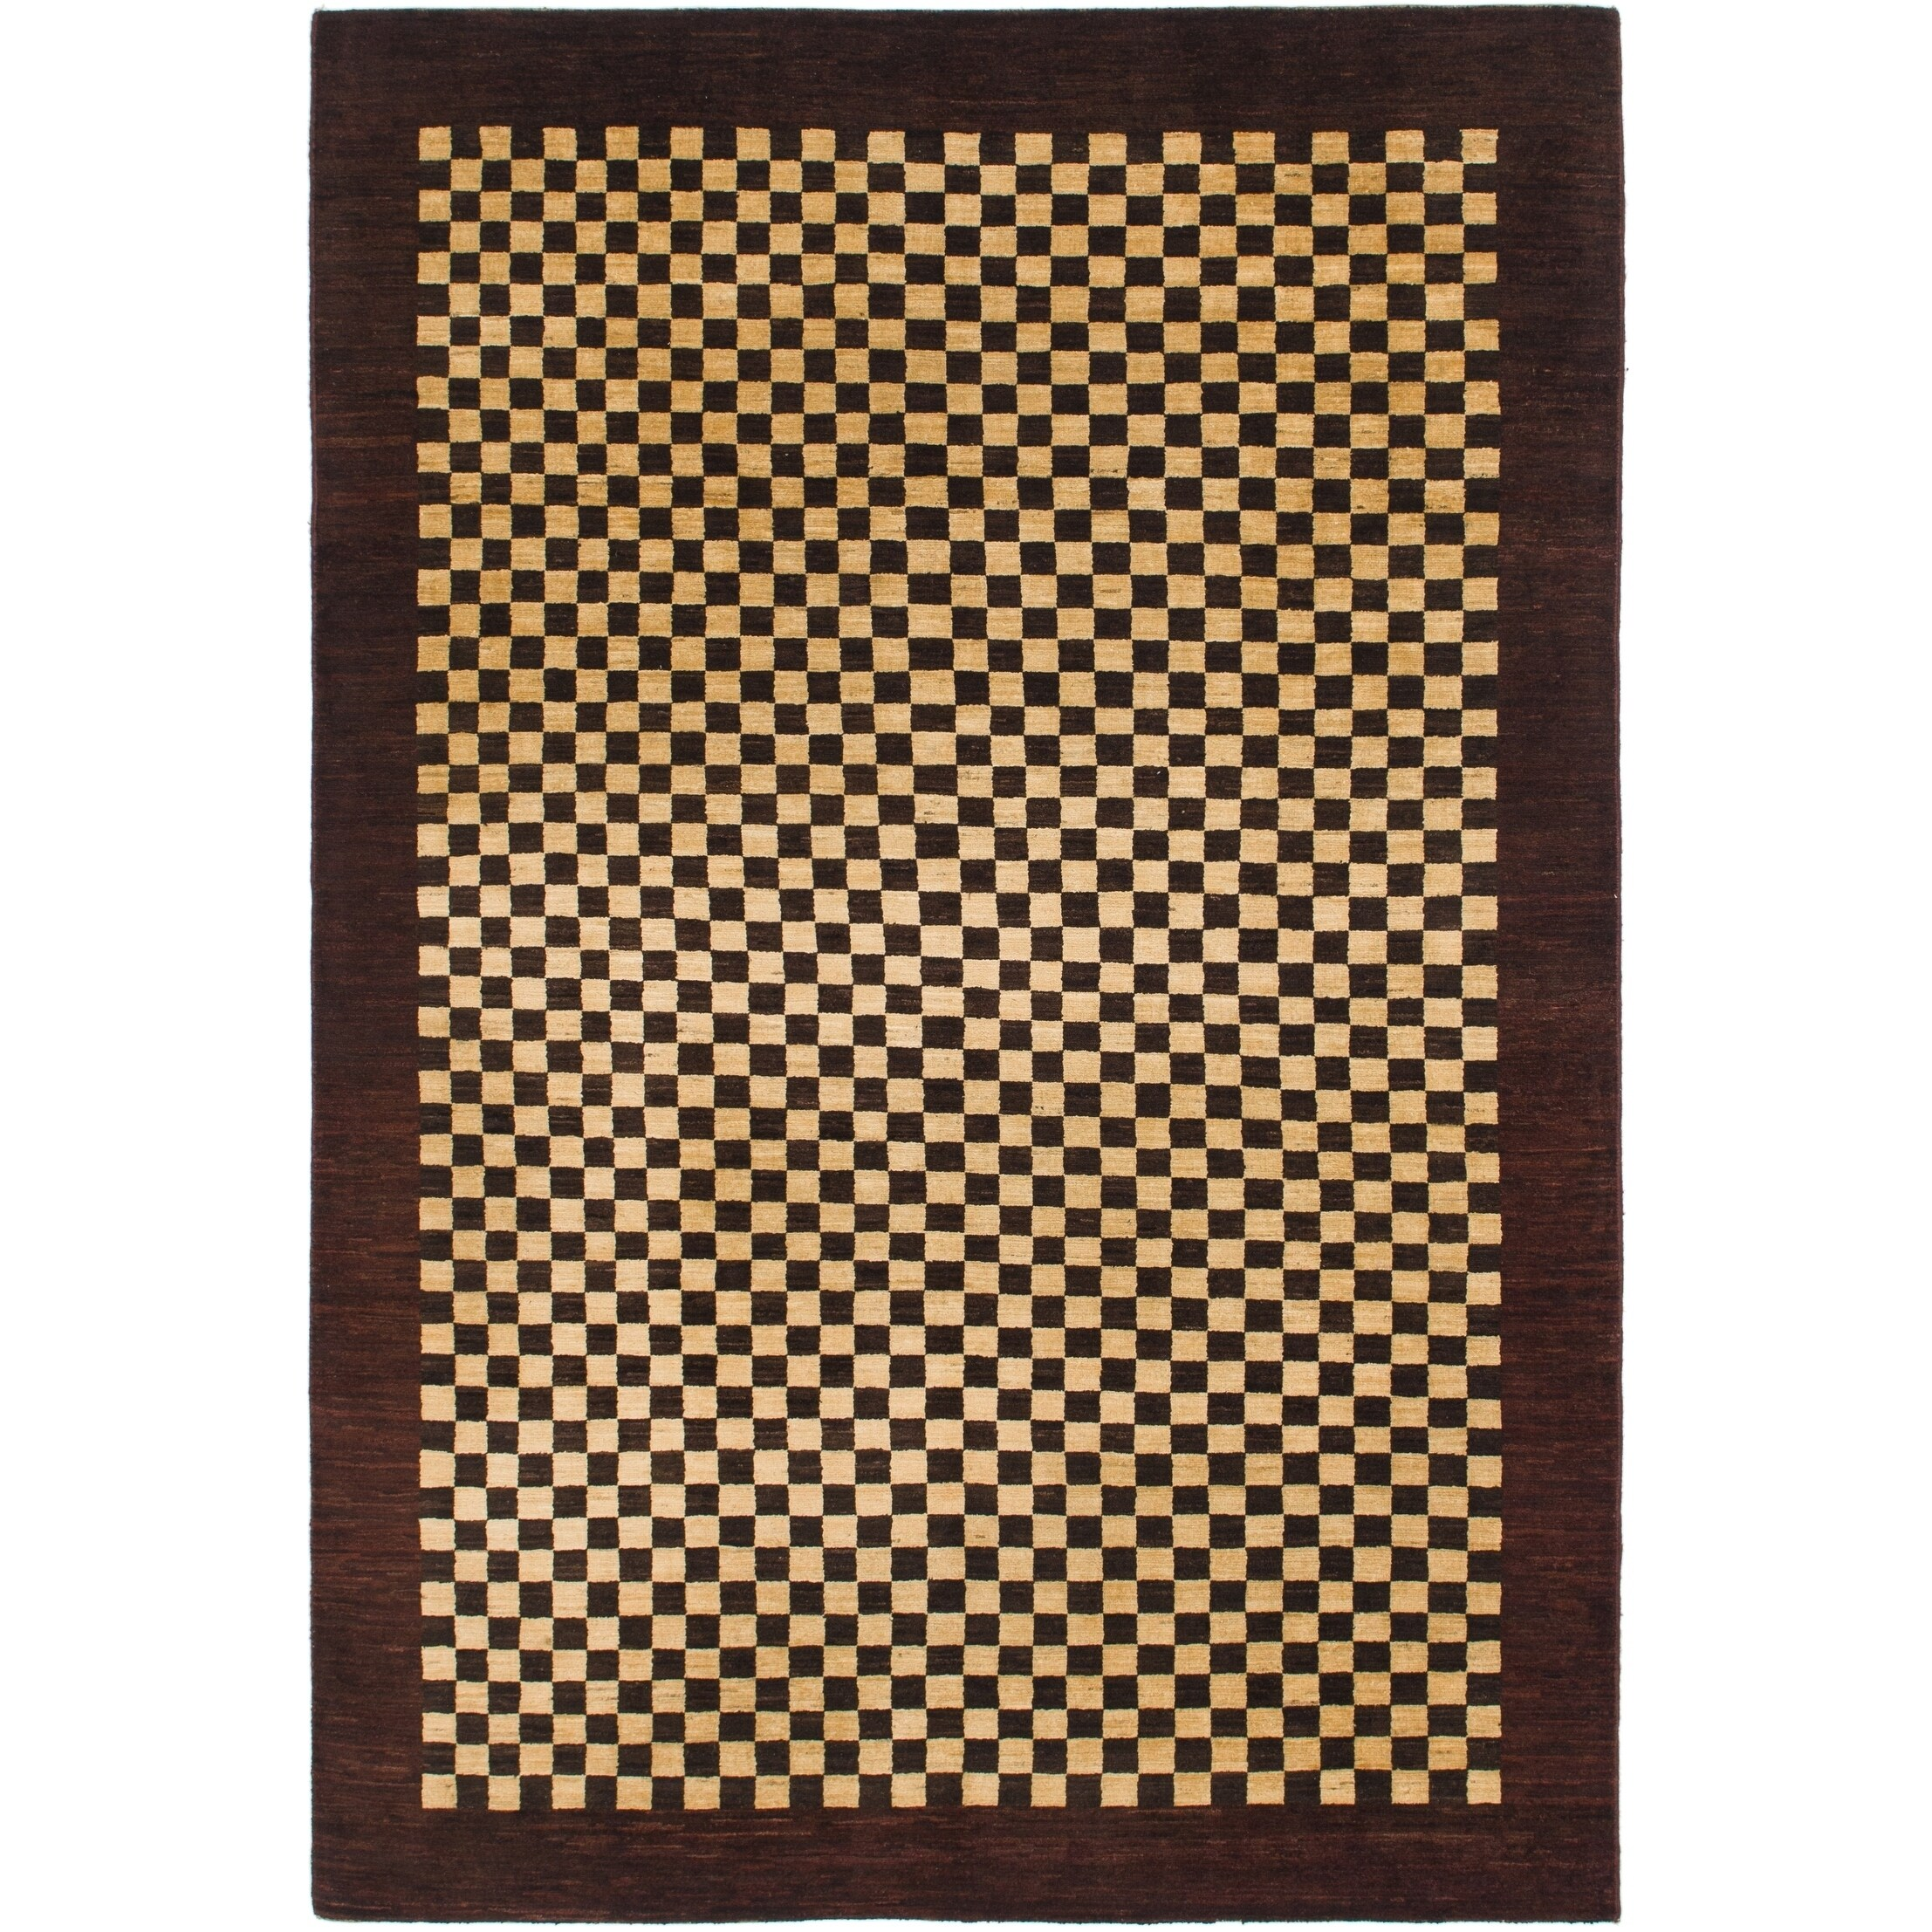 Hand Knotted Kashkuli Gabbeh Wool Area Rug - 6 5 x 9 6 (Burgundy - 6 5 x 9 6)